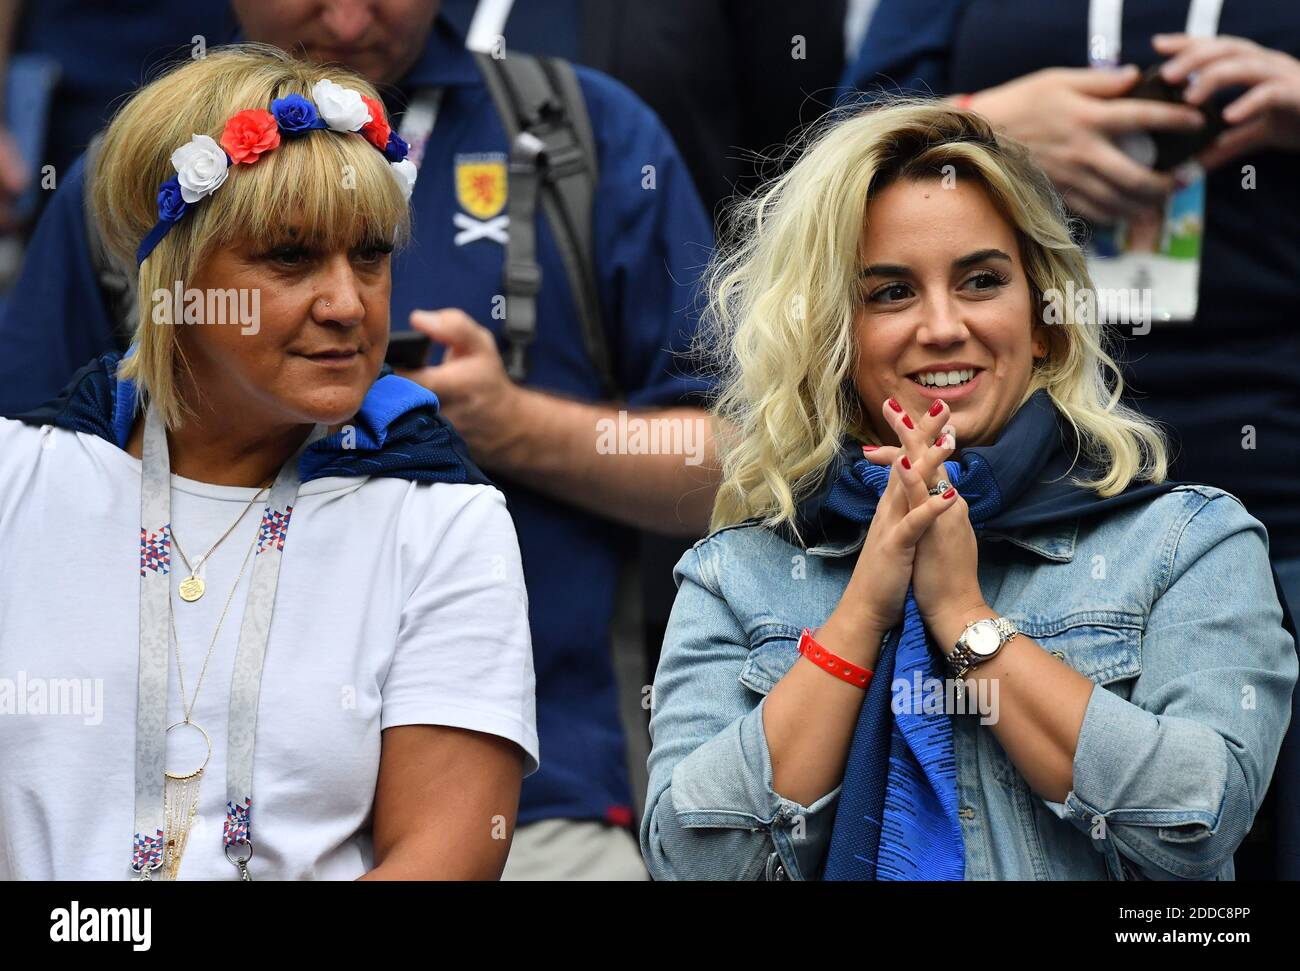 Antoine Griezmann S Wife Erika Choperena With Isabelle Mother Of Antoine Griezmann During The Fifa World Cup 2018 Round Of 8 Match At The Nizhny Novgorod Stadium Russia On July 6 2018